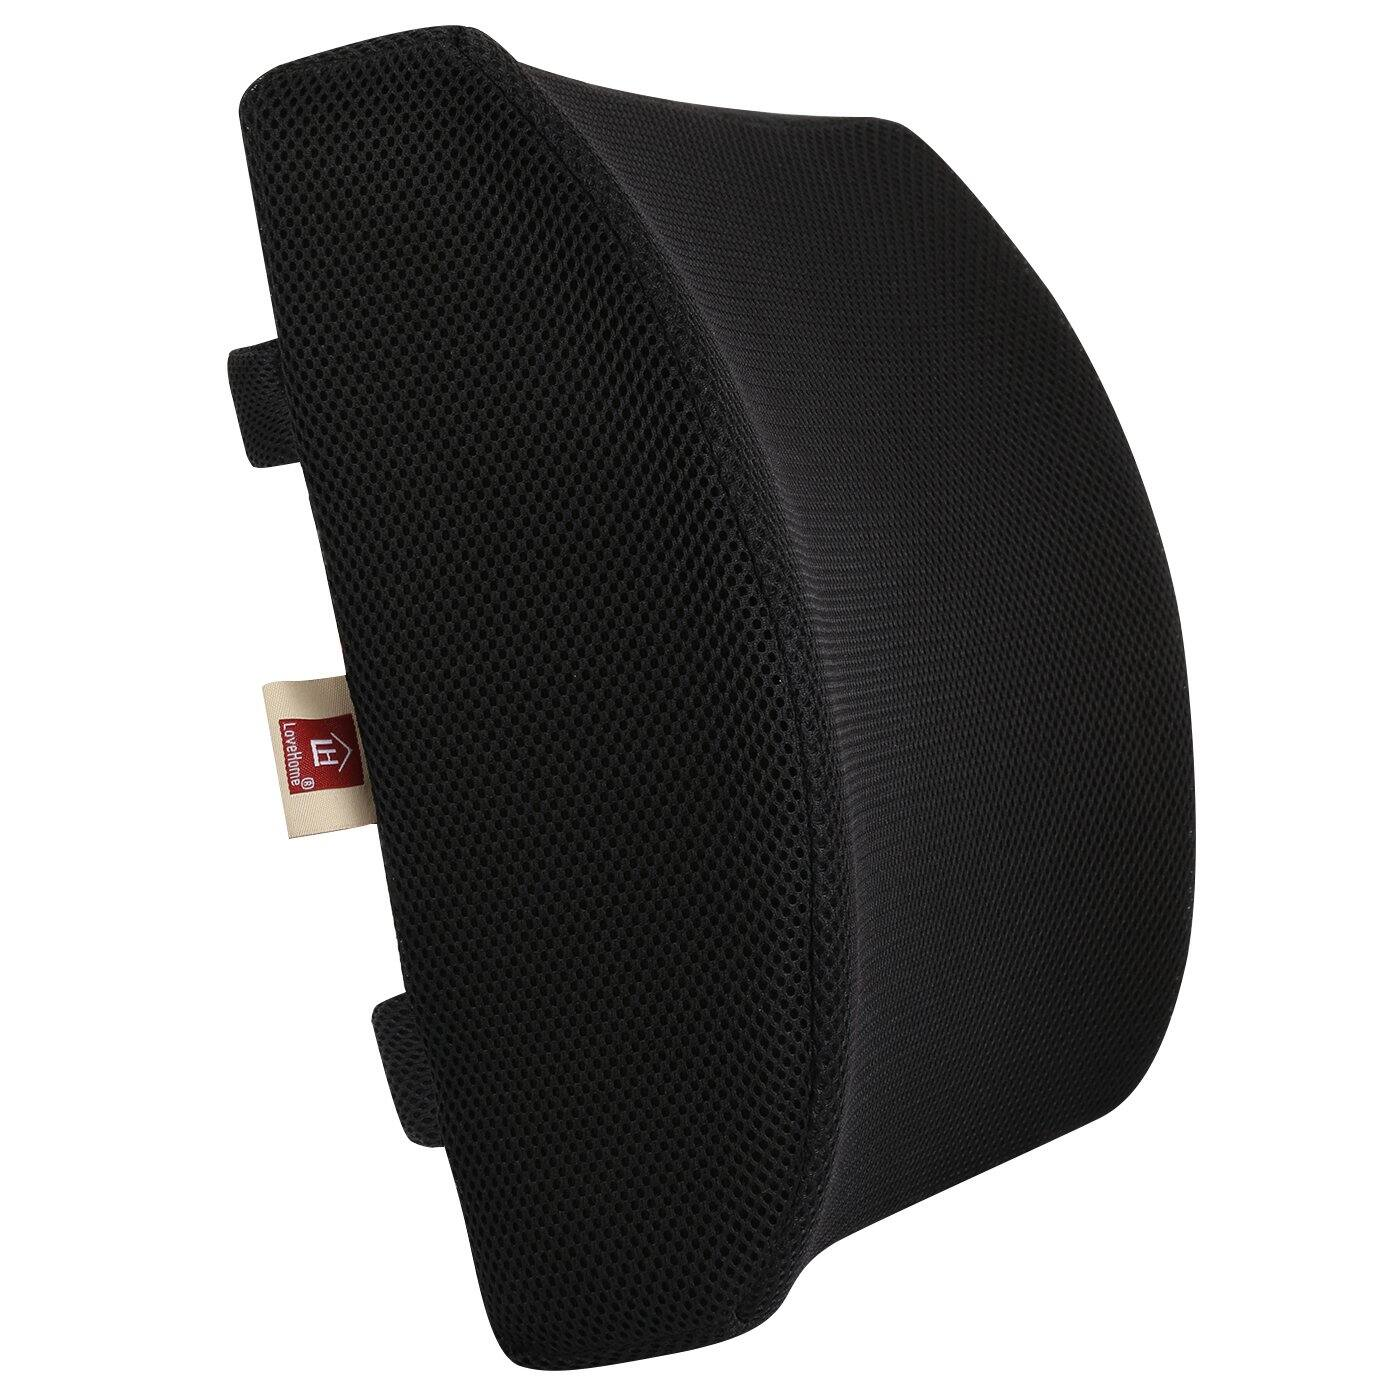 50% OFF on LOVEHOME Memory Foam Lumbar Support Back Cushion with 3D Mesh Cover $12.99